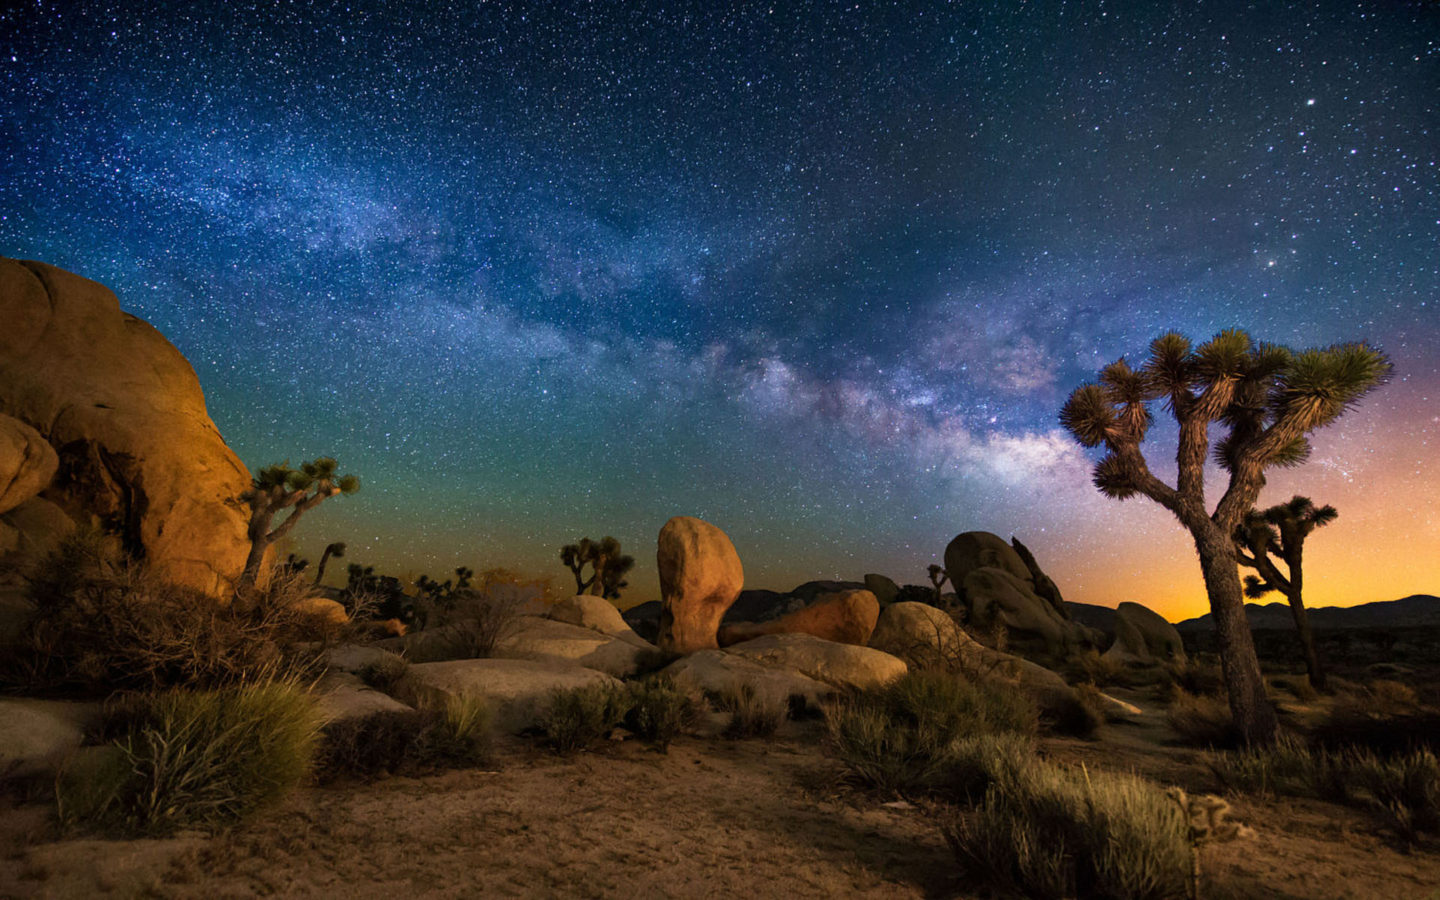 Starry Night Iphone X Wallpaper Starry Sky Desert Area Night In Joshua Tree National Park